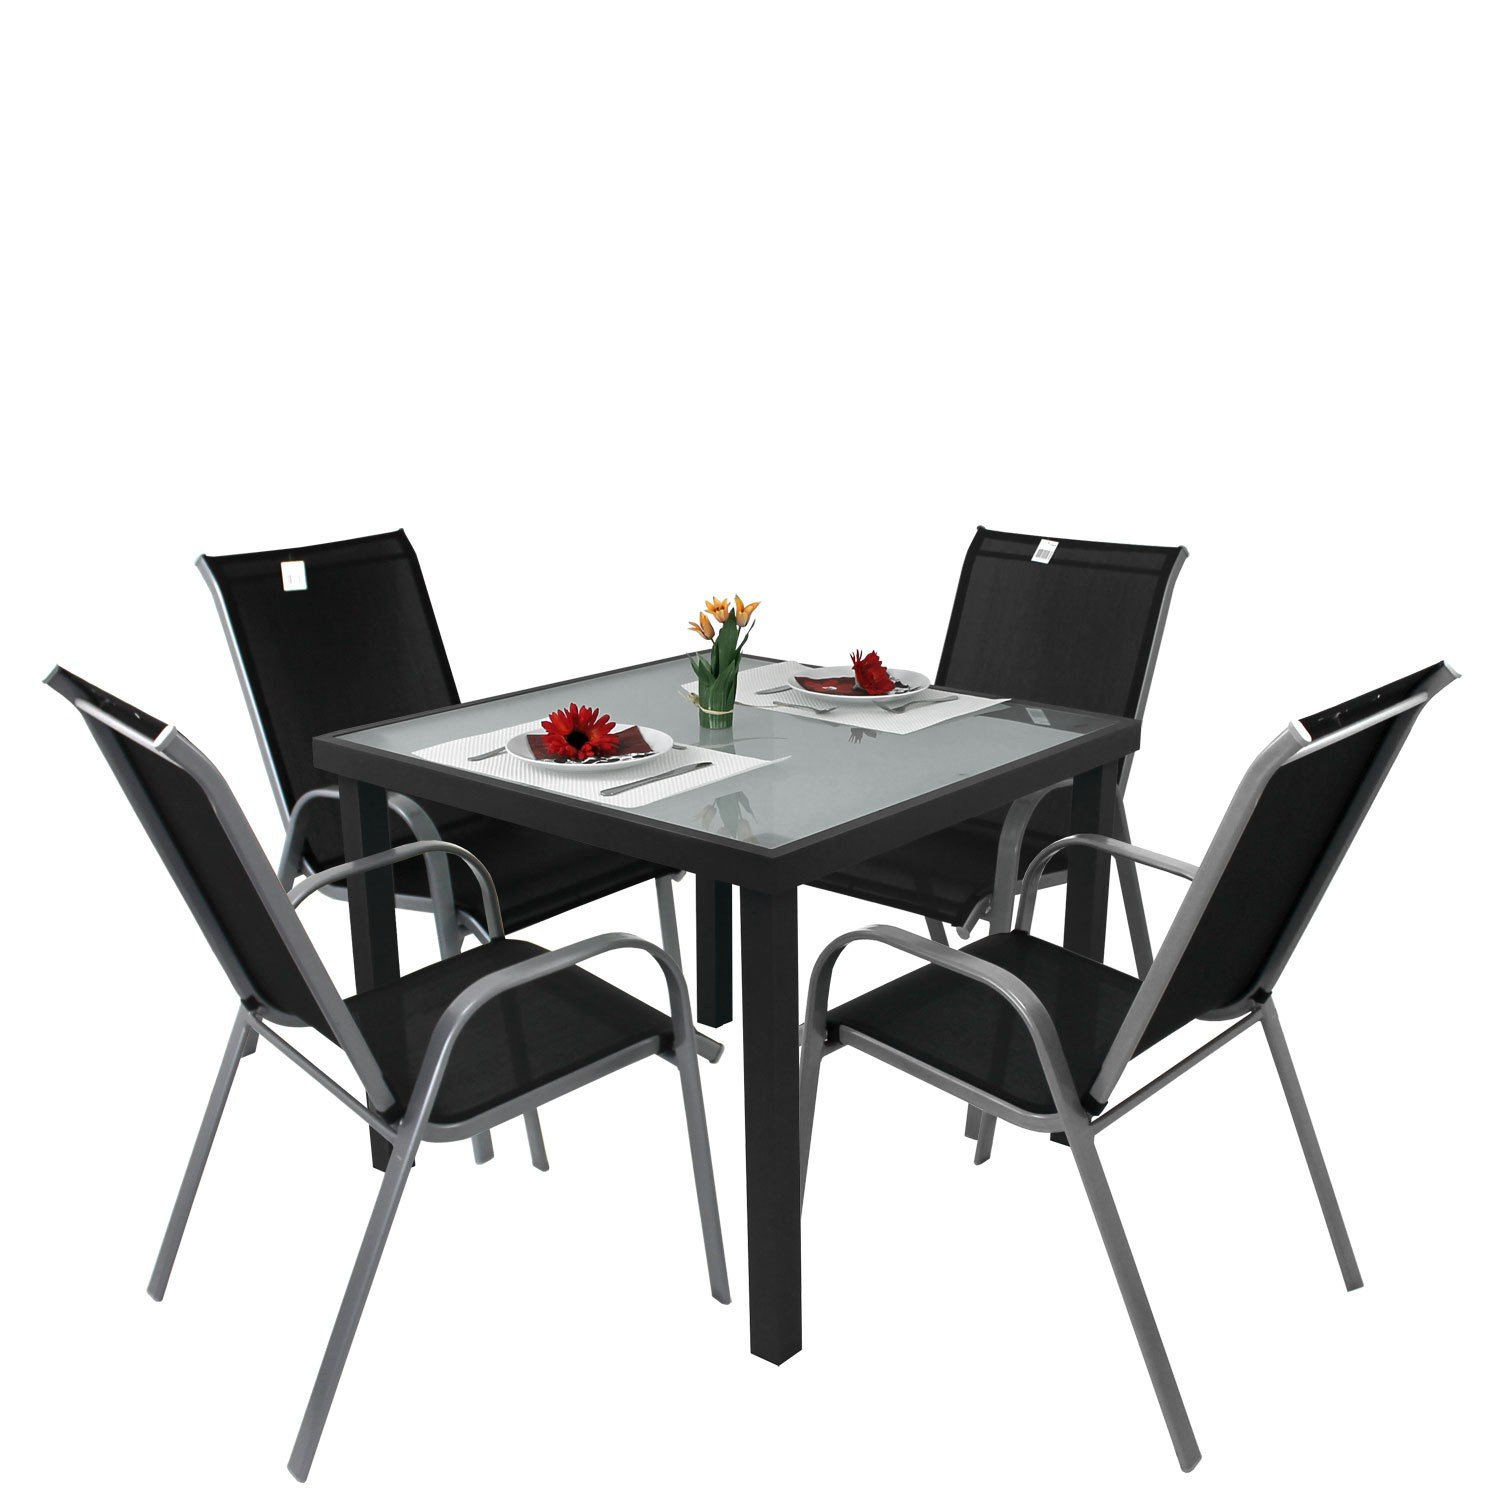 5tlg bistrogarnitur bistro set balkonm bel aluminium bistrotisch glastisch 90x90cm gartenstuhl. Black Bedroom Furniture Sets. Home Design Ideas